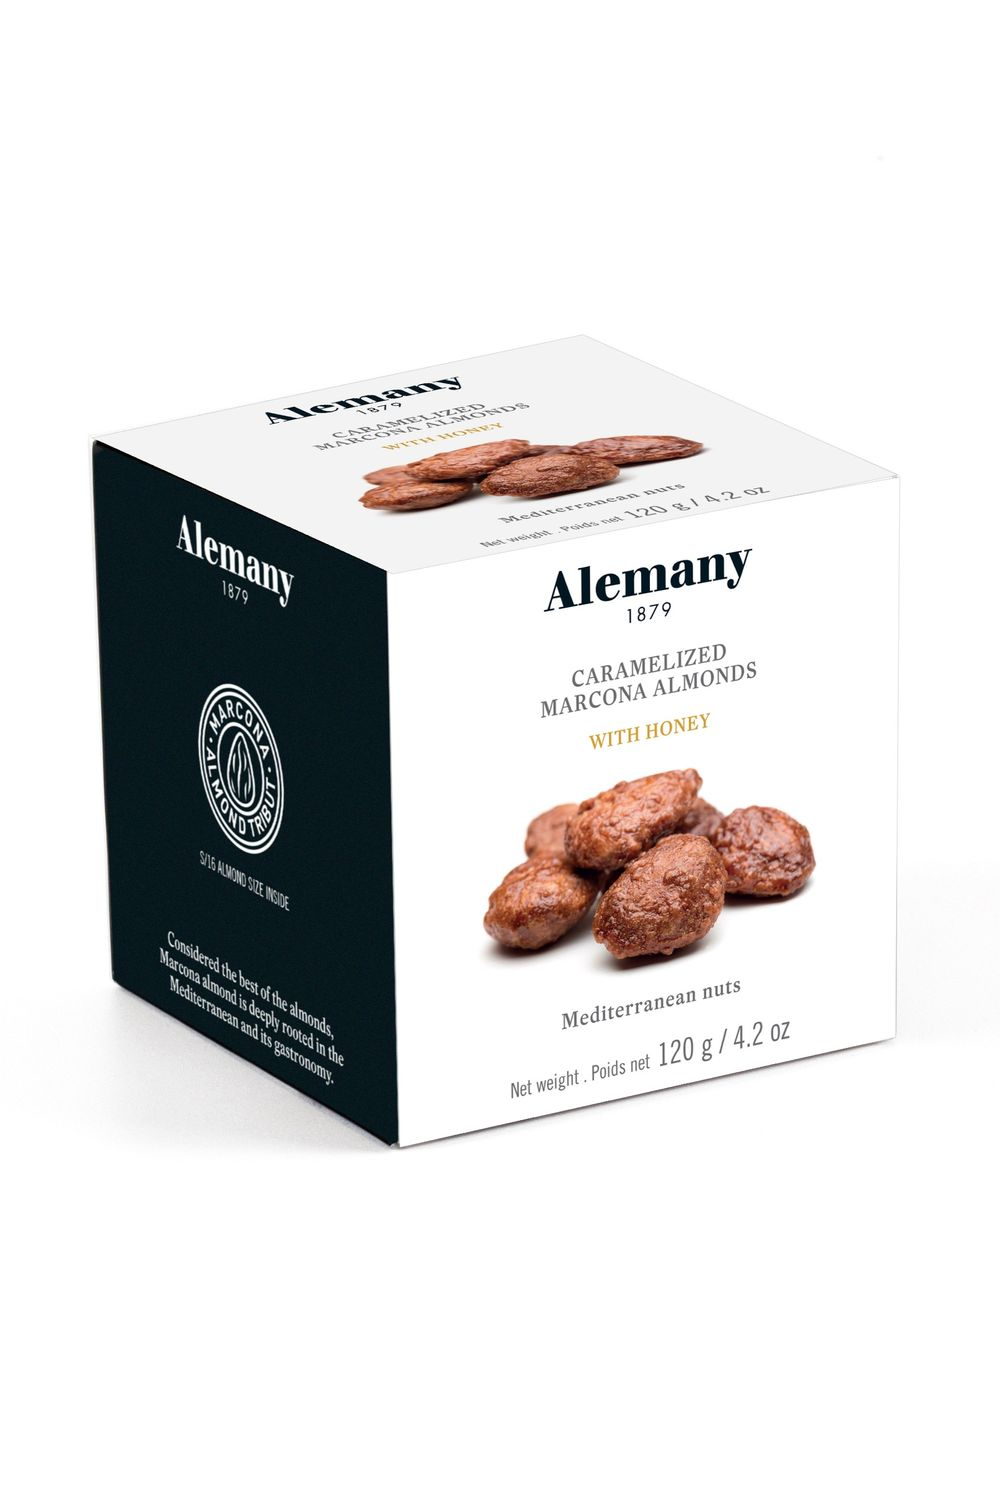 Caramelized Almonds with Honey